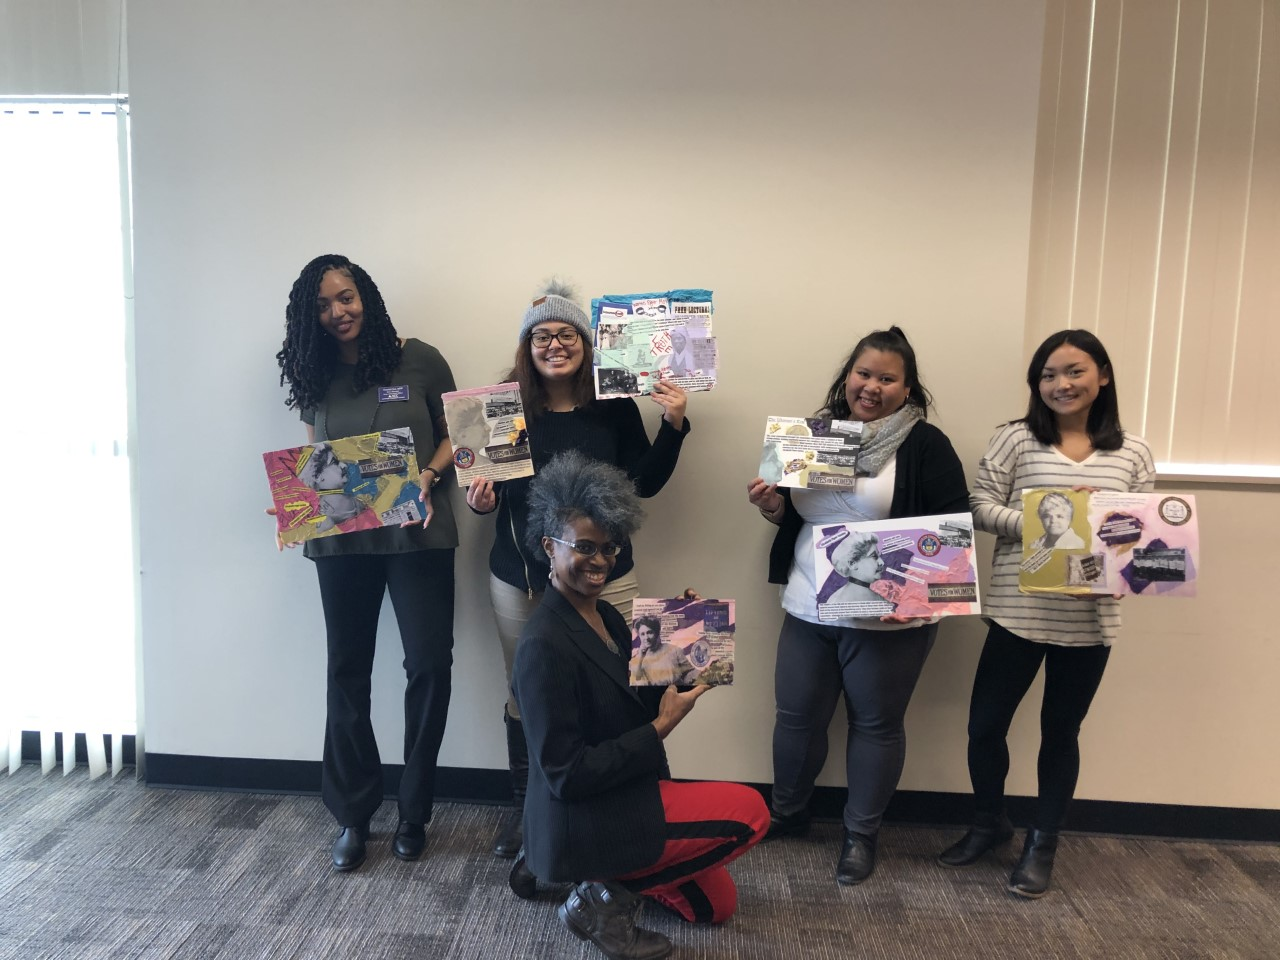 Adri Norris poses with ACC students and their collage art at the Parker Campus on Feb. 6, 2020.